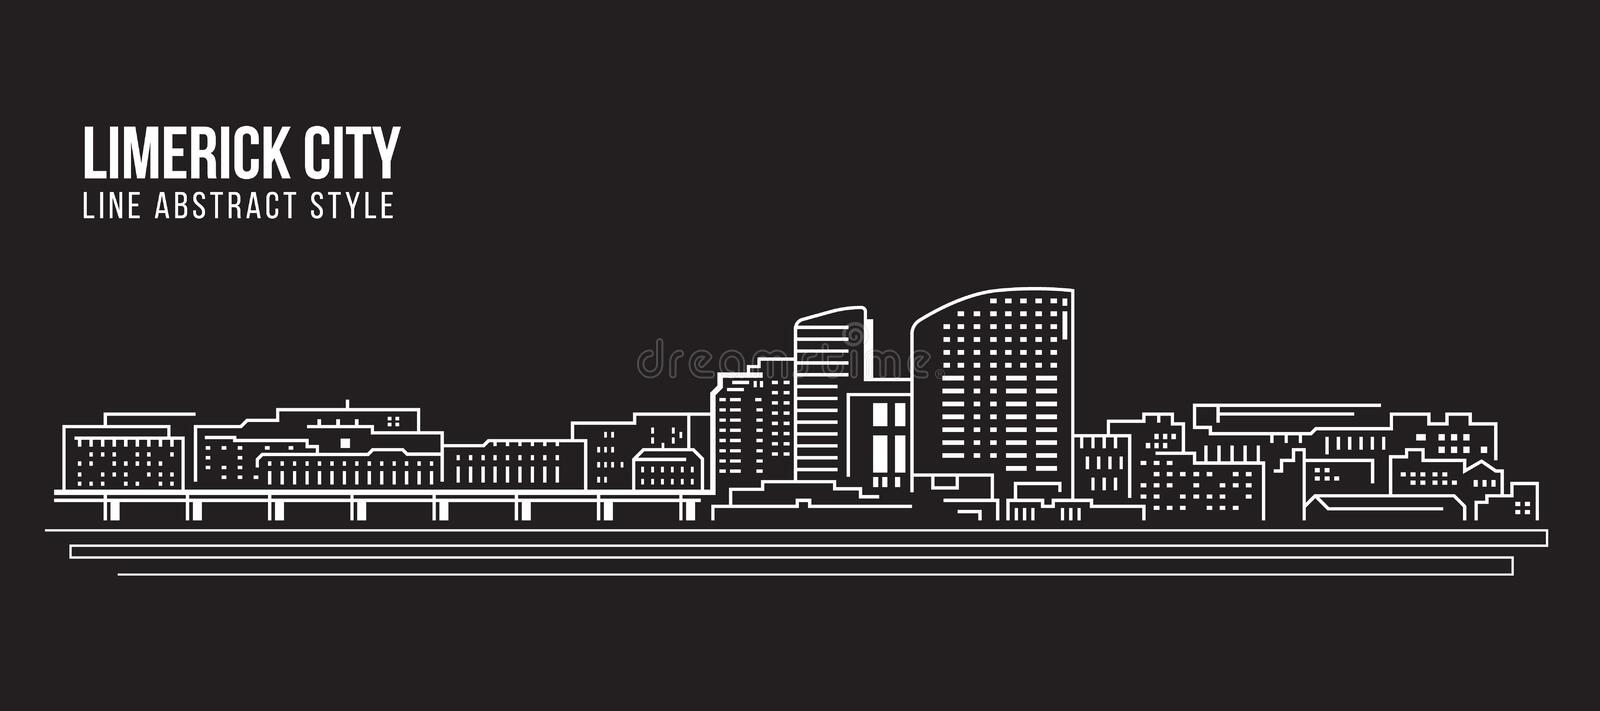 Alignement de paysage urbain conception d'illustration de vecteur d'art - ville de Limerick illustration stock